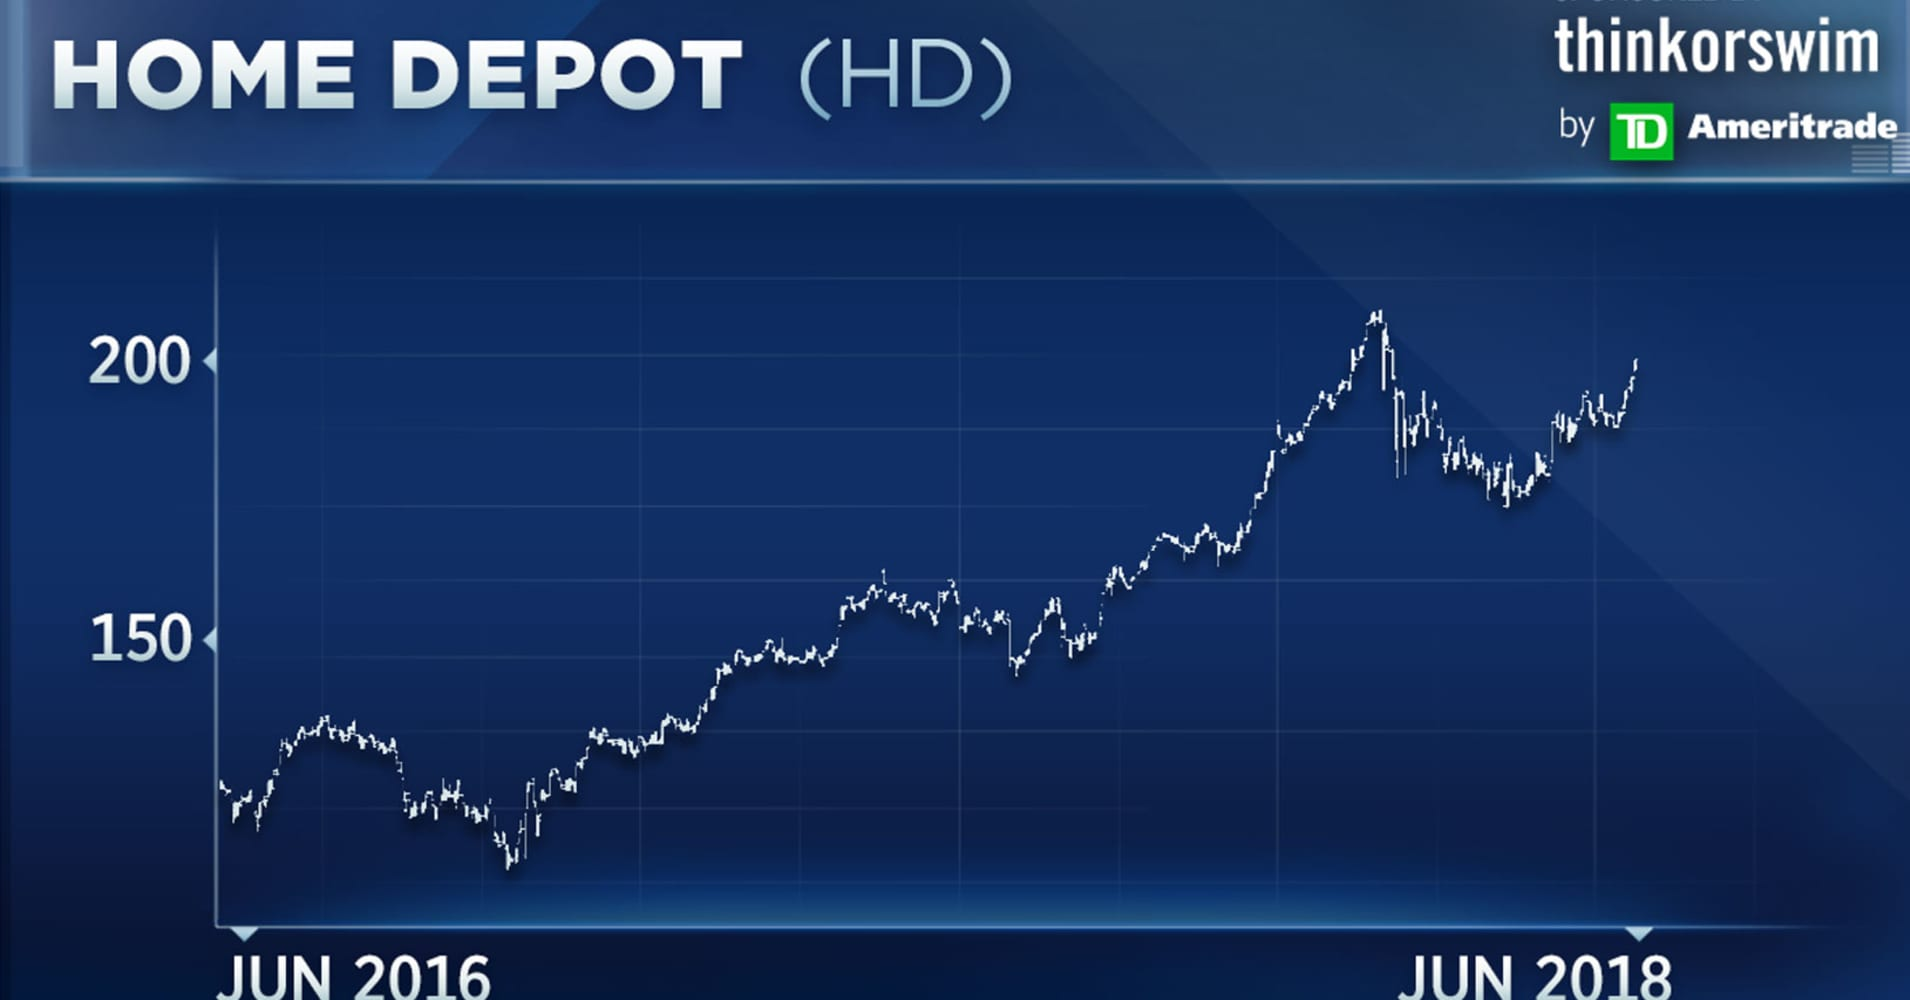 Charts point to a big breakout for Dow stock Home Depot, technician says